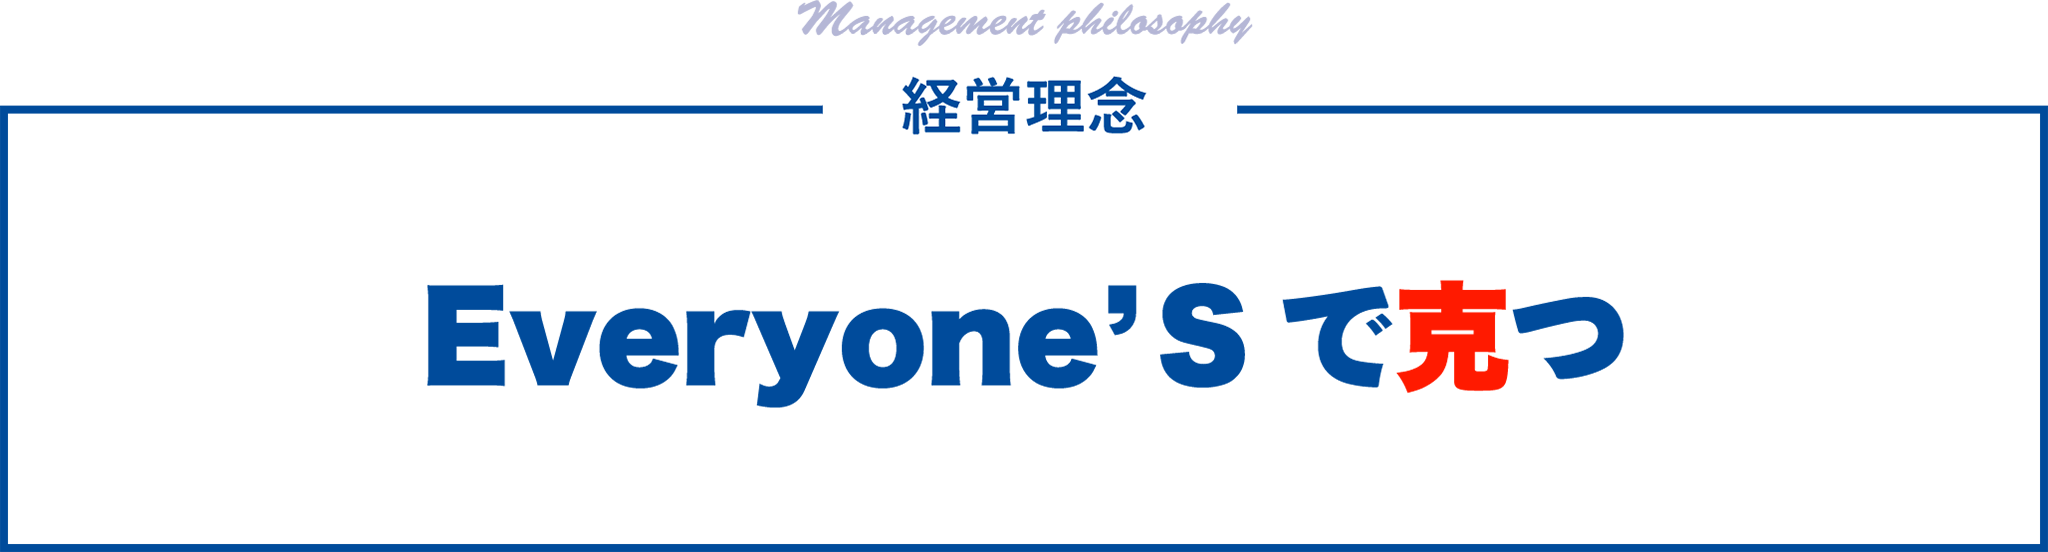 Management philosophy / 経営理念|Everyones'Sで克つ